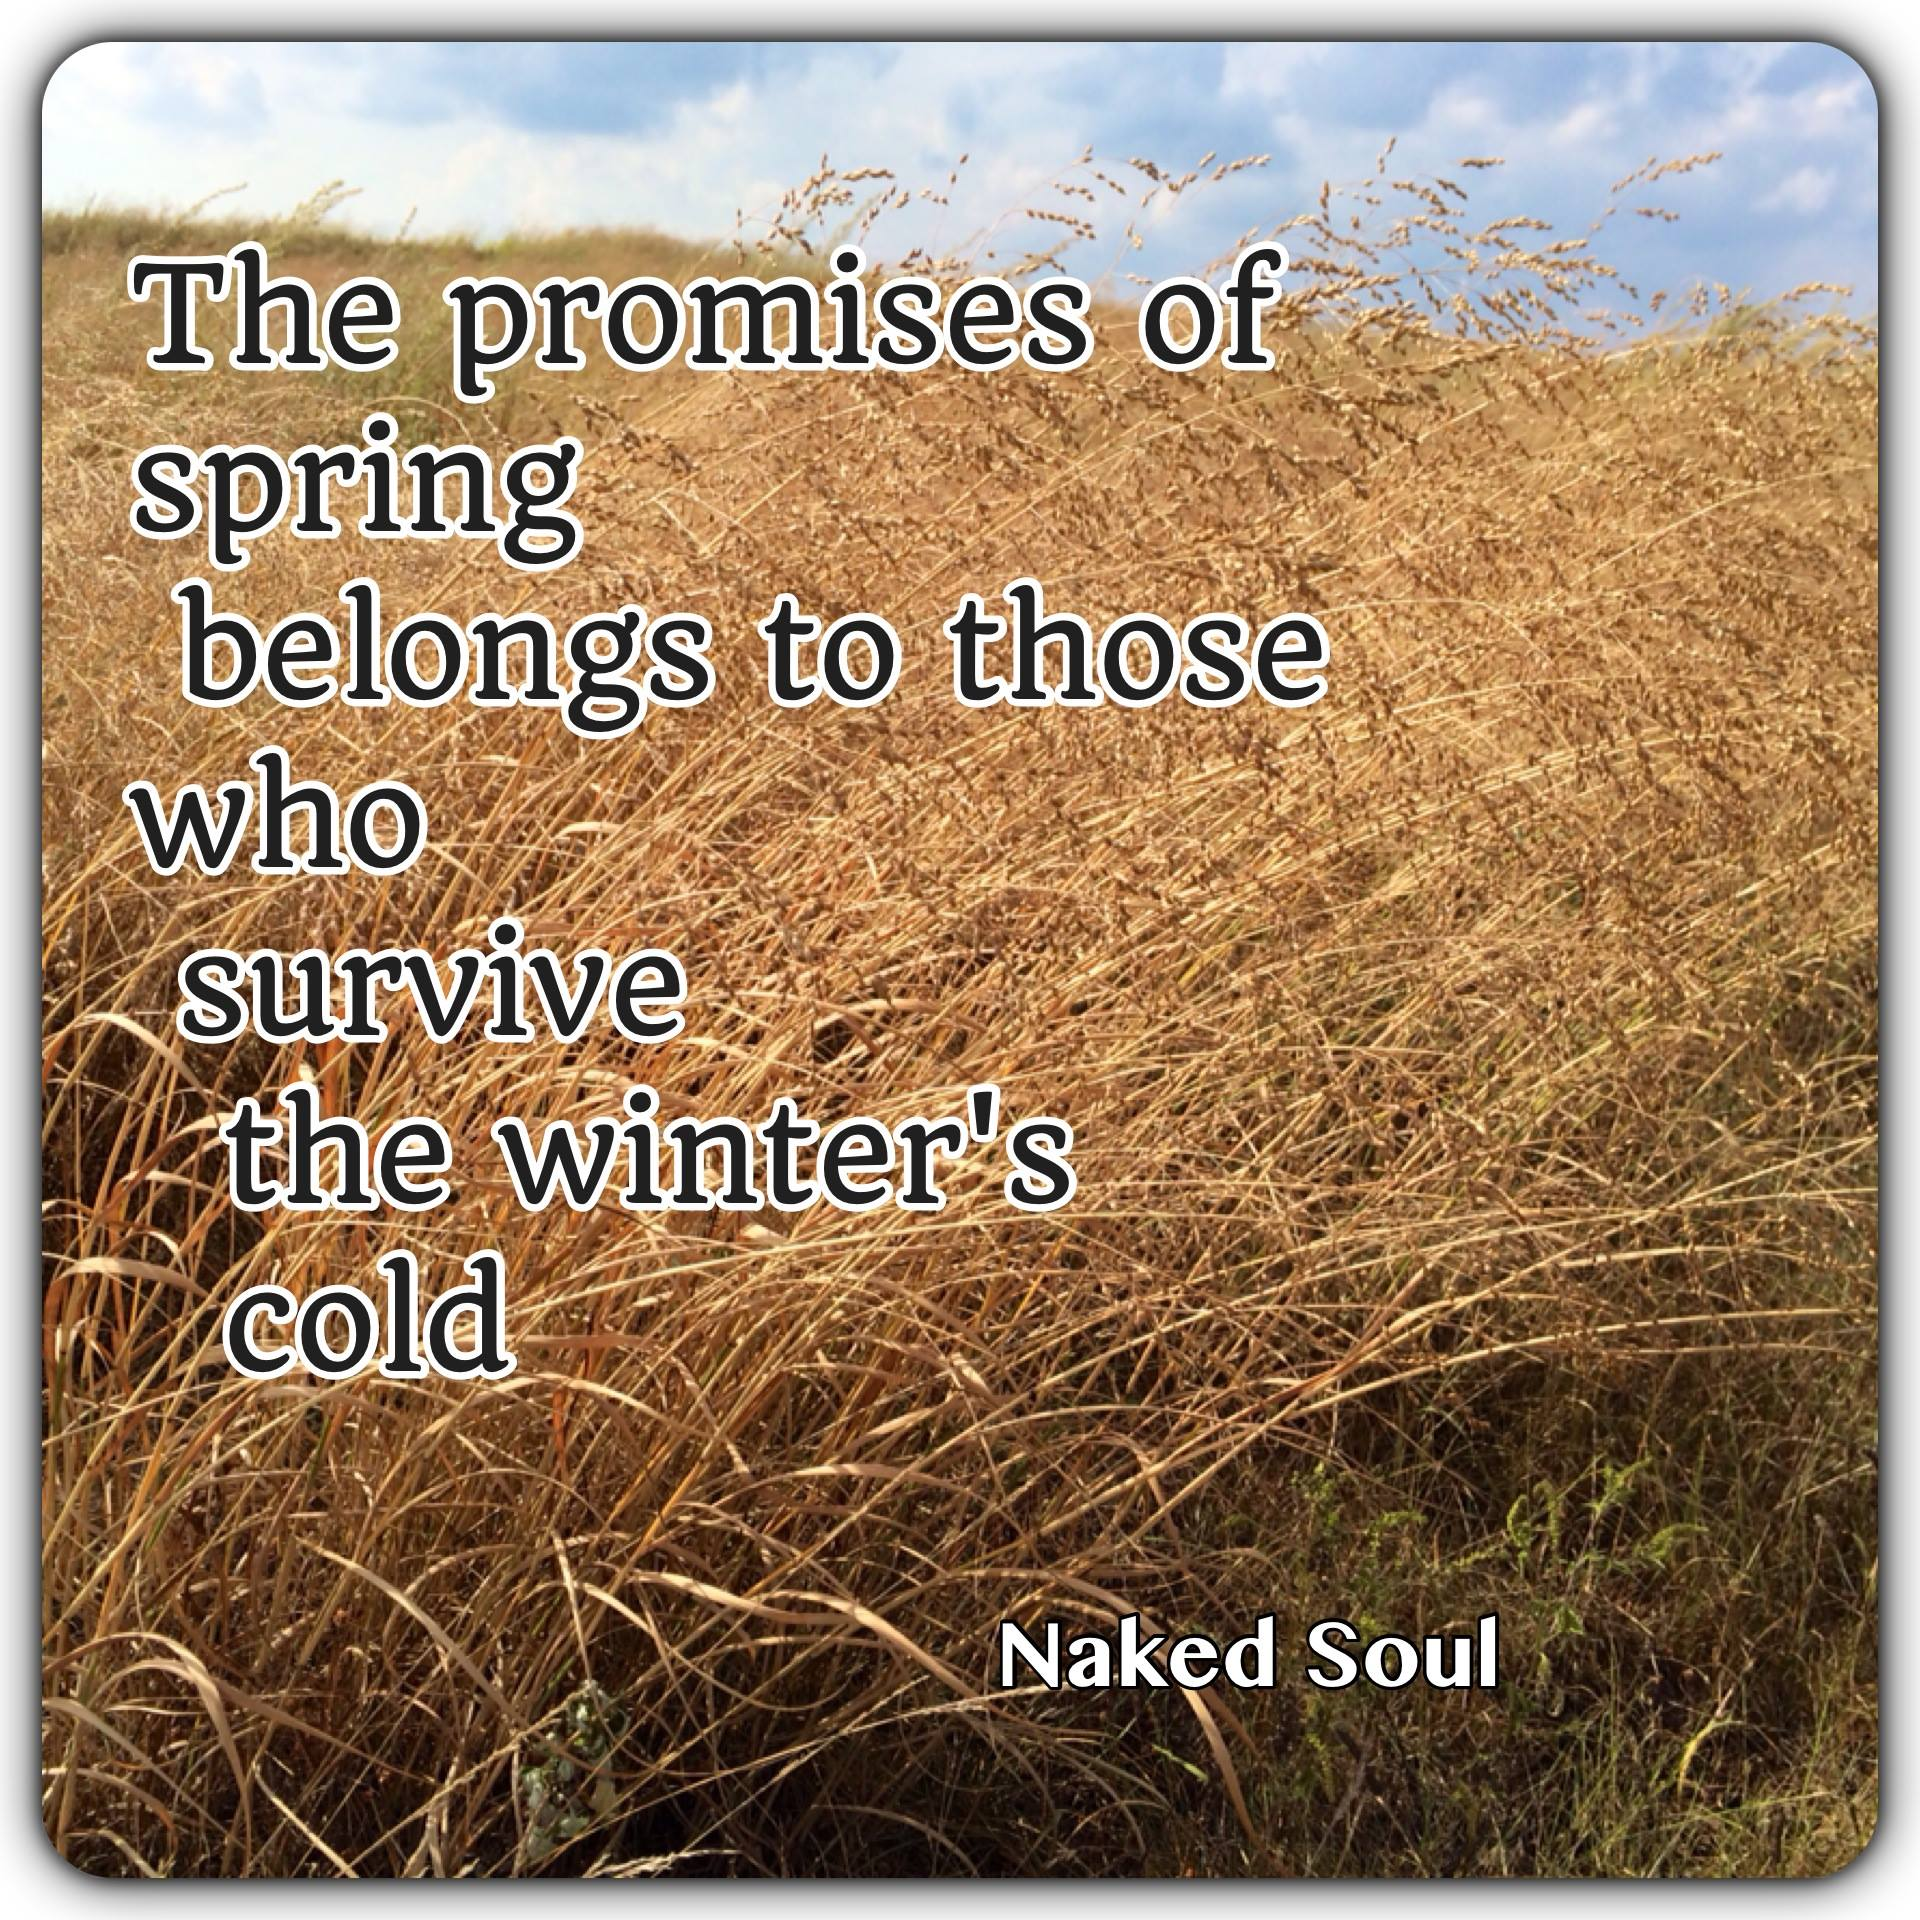 The promises of spring belongs to those who survive the winter's cold.